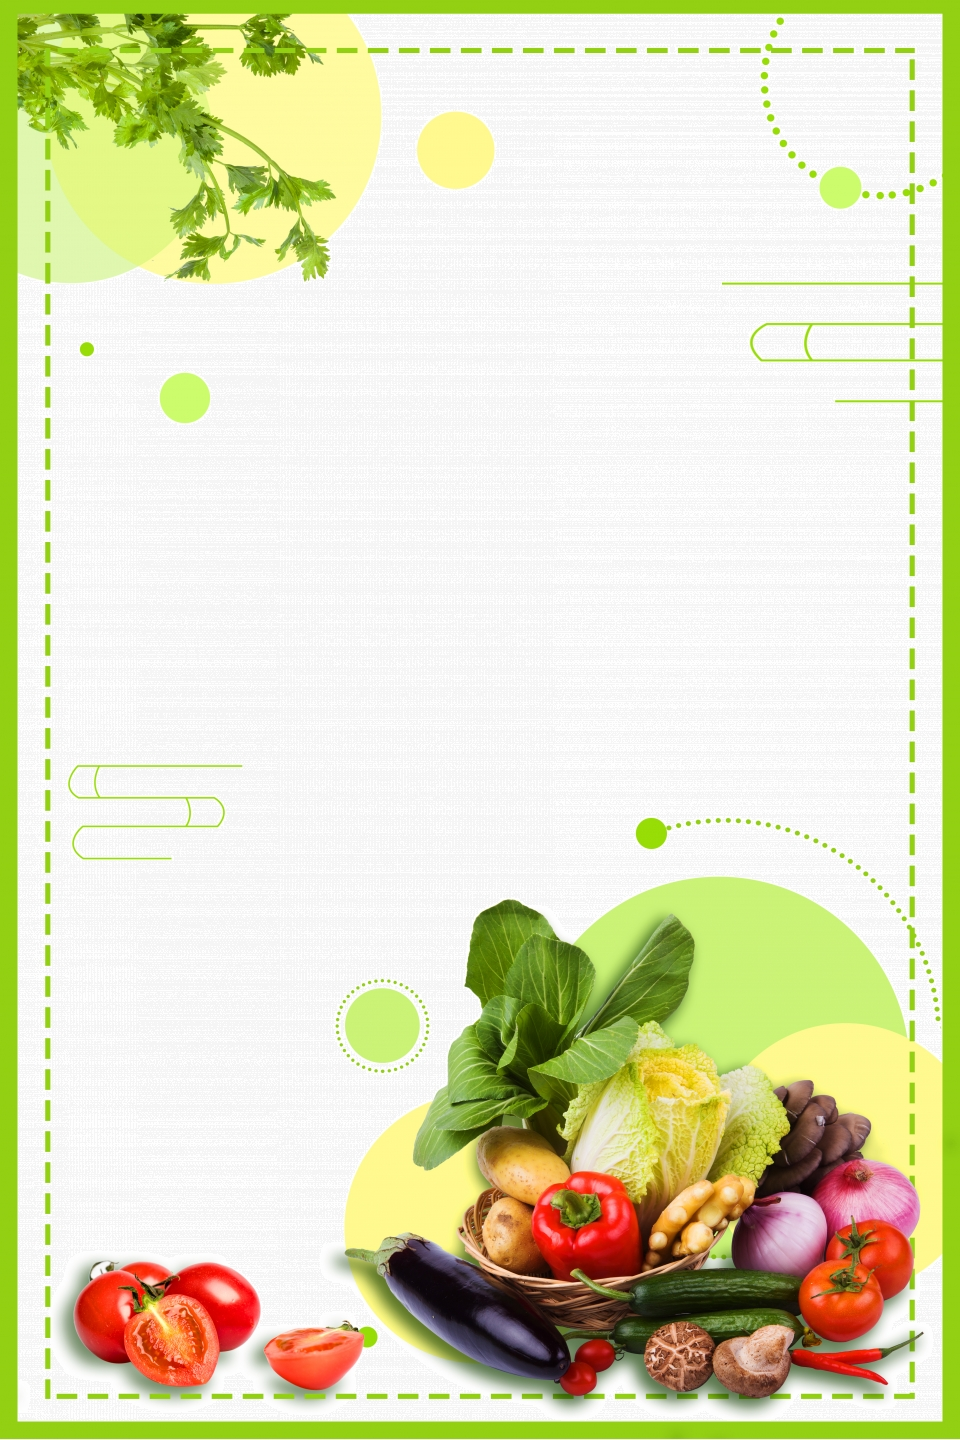 Small Fresh Green Healthy Food Seasonal Fruits And Vegetables Vegetables Background Image For Free Download